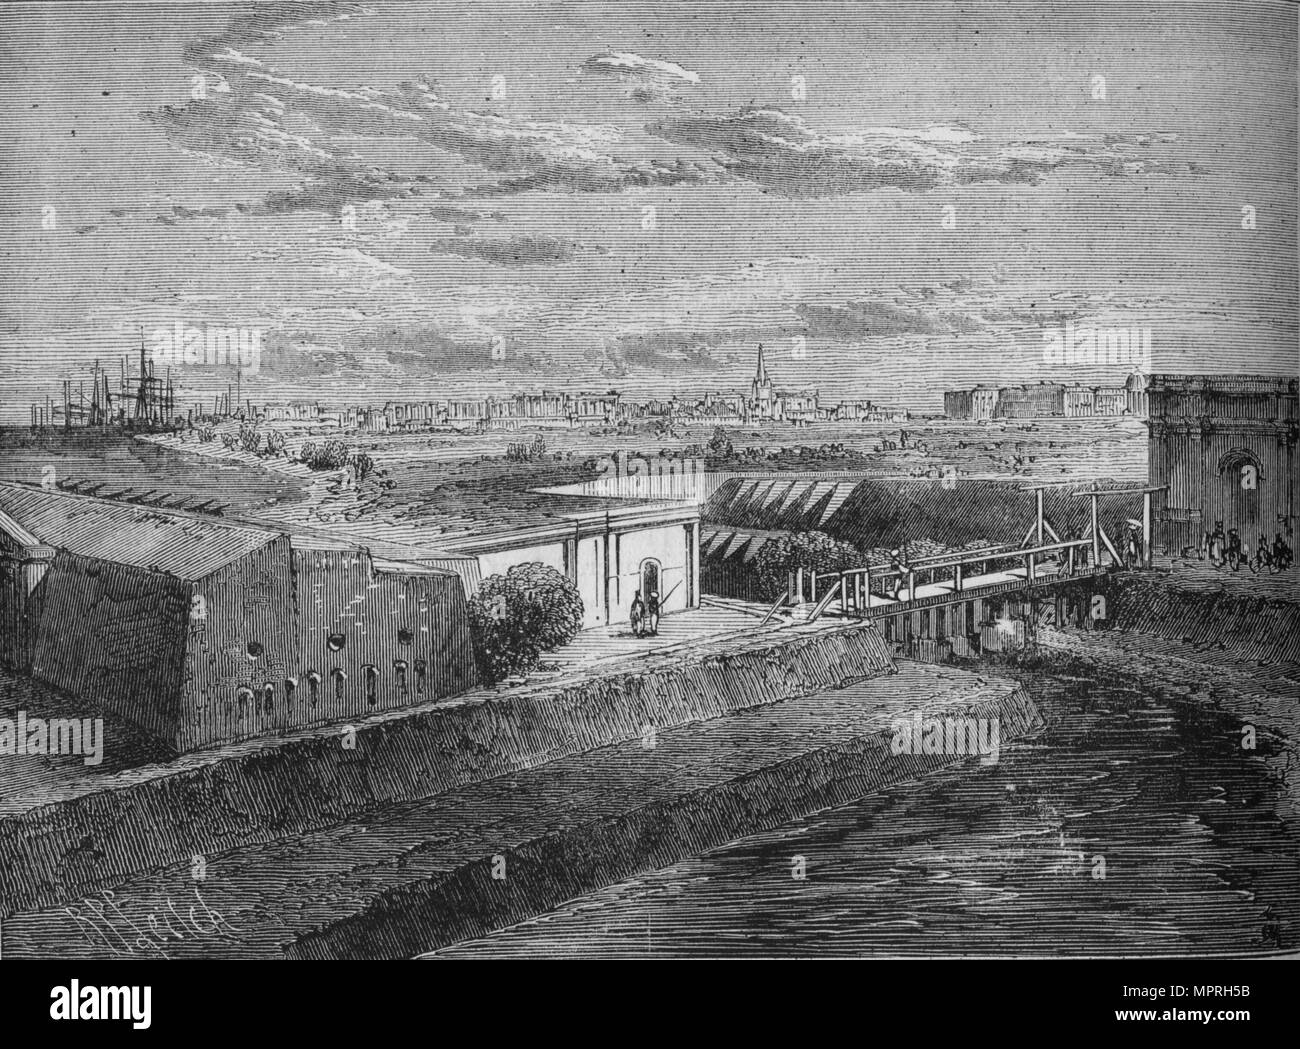 'Fort William', c1880. Artist: Richard Principal Leitch. - Stock Image